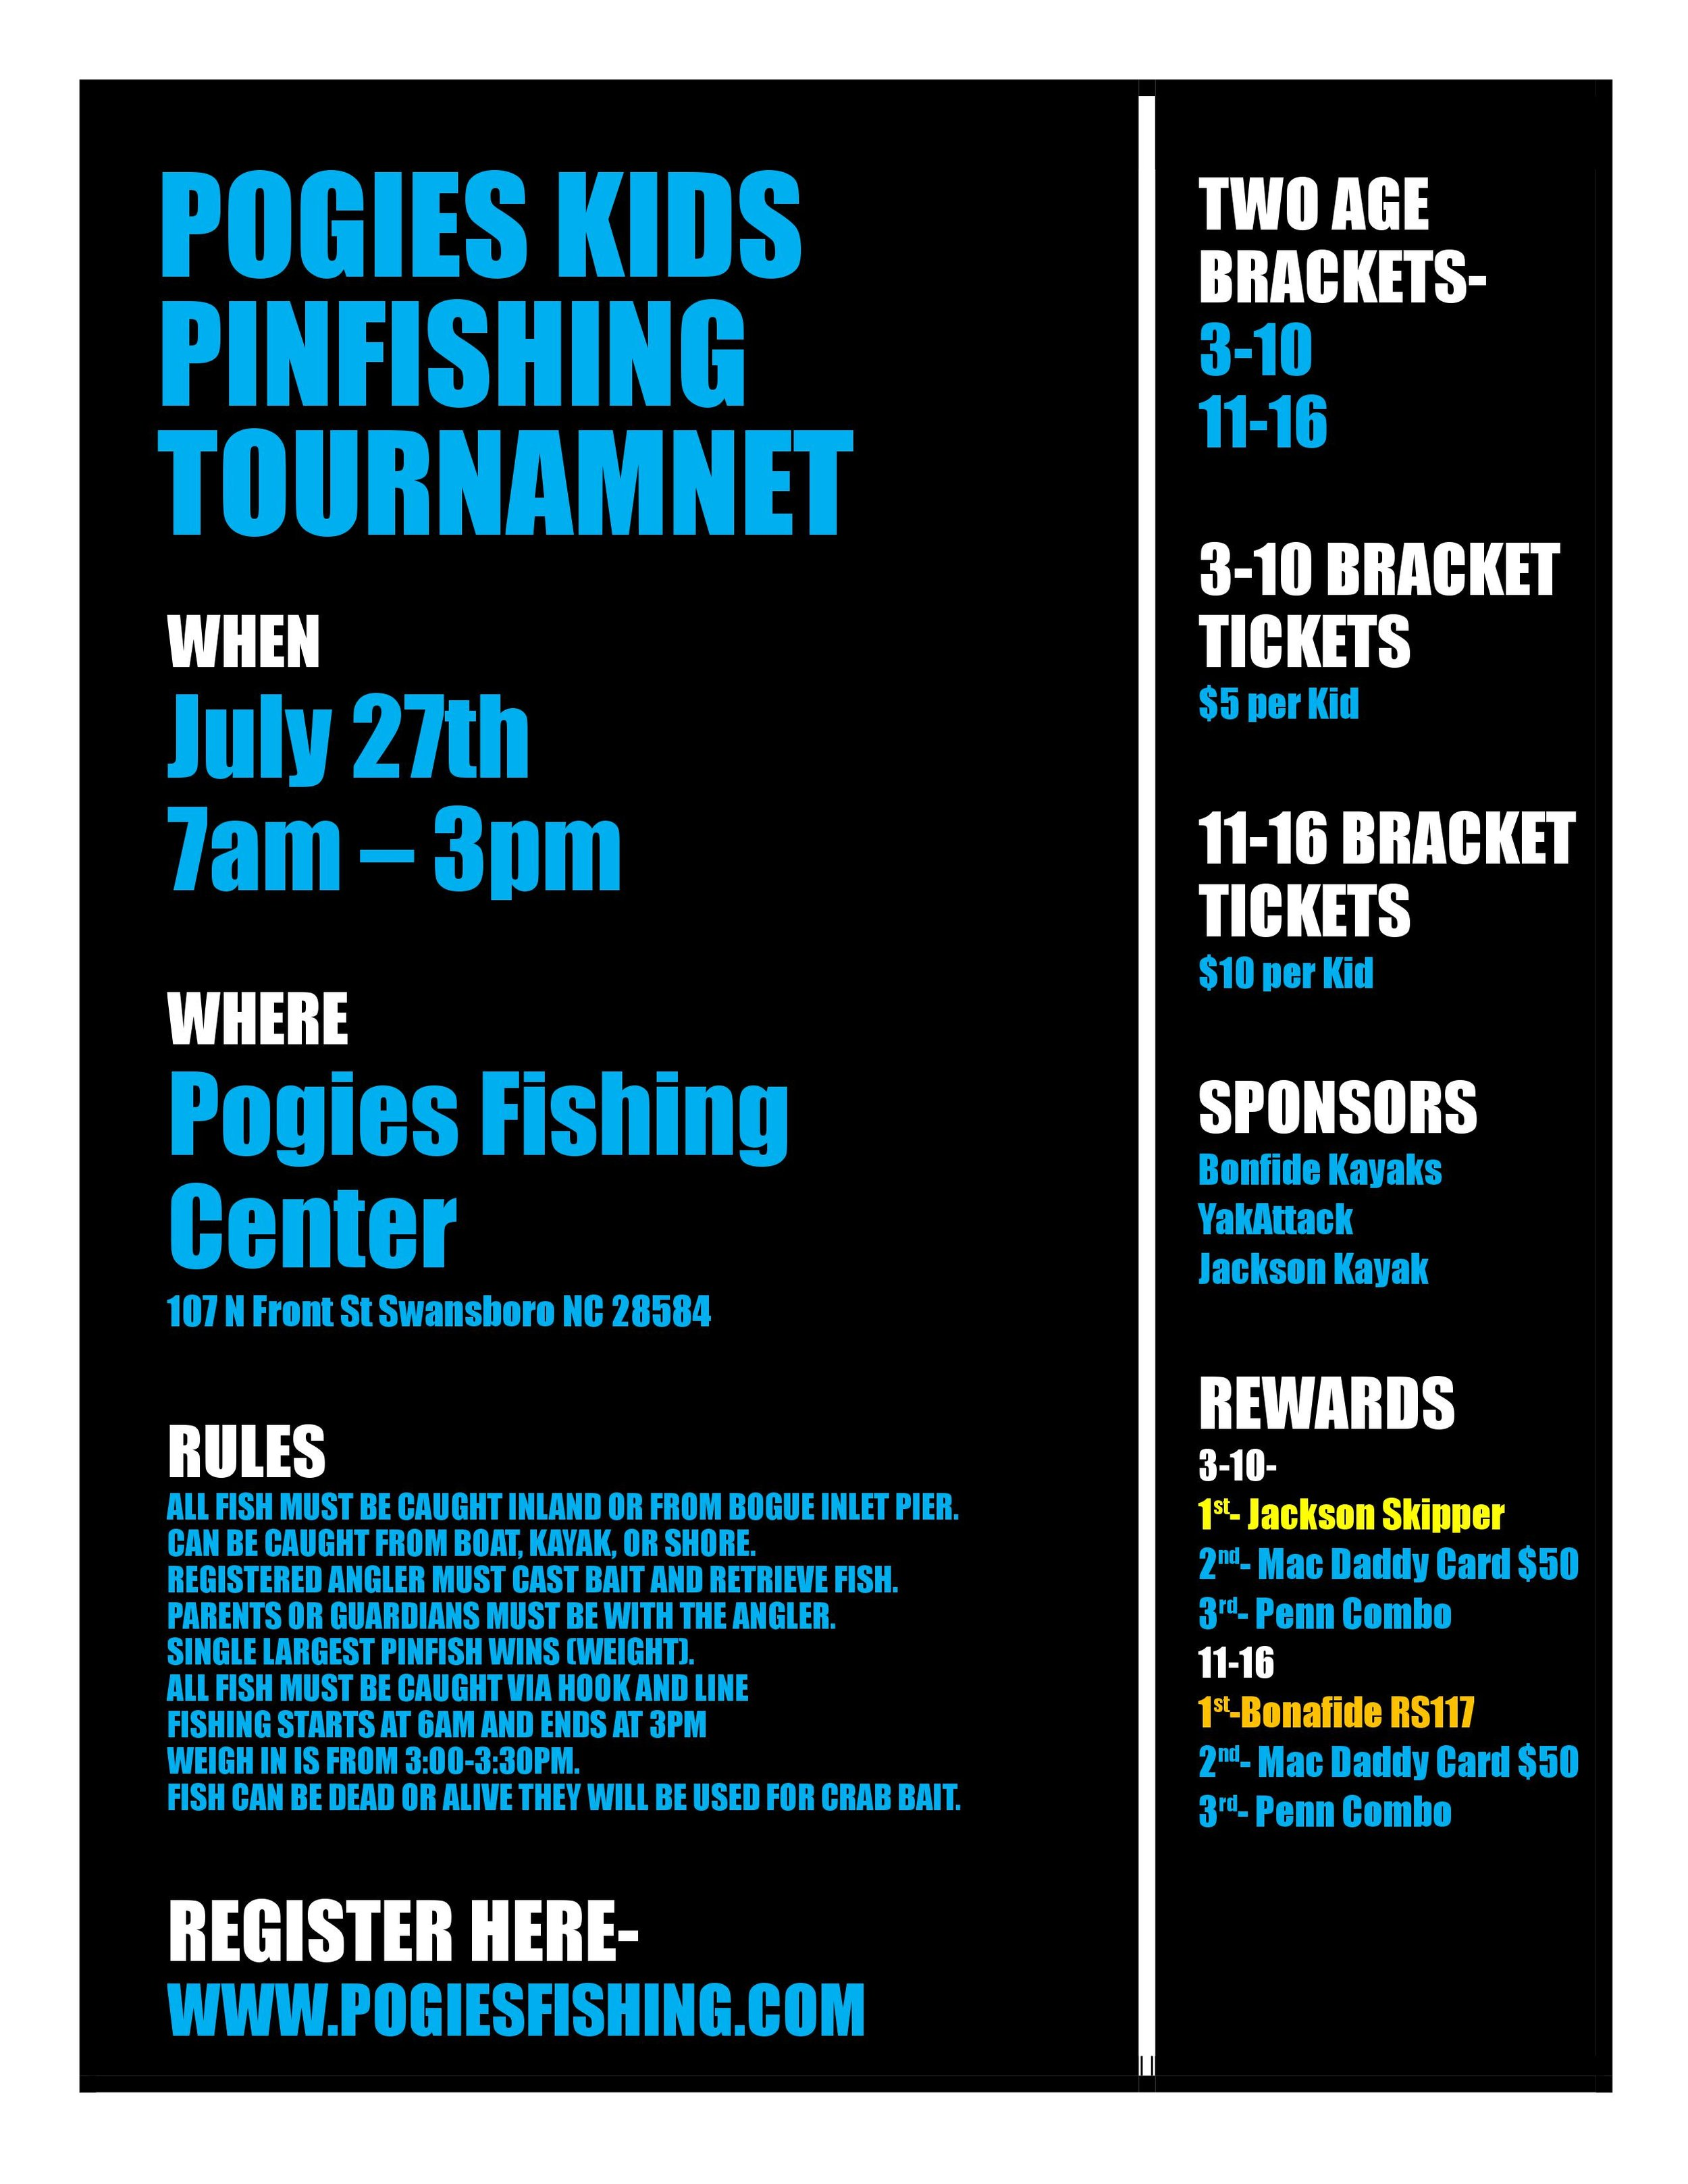 pinfish tourney hey hey.jpg